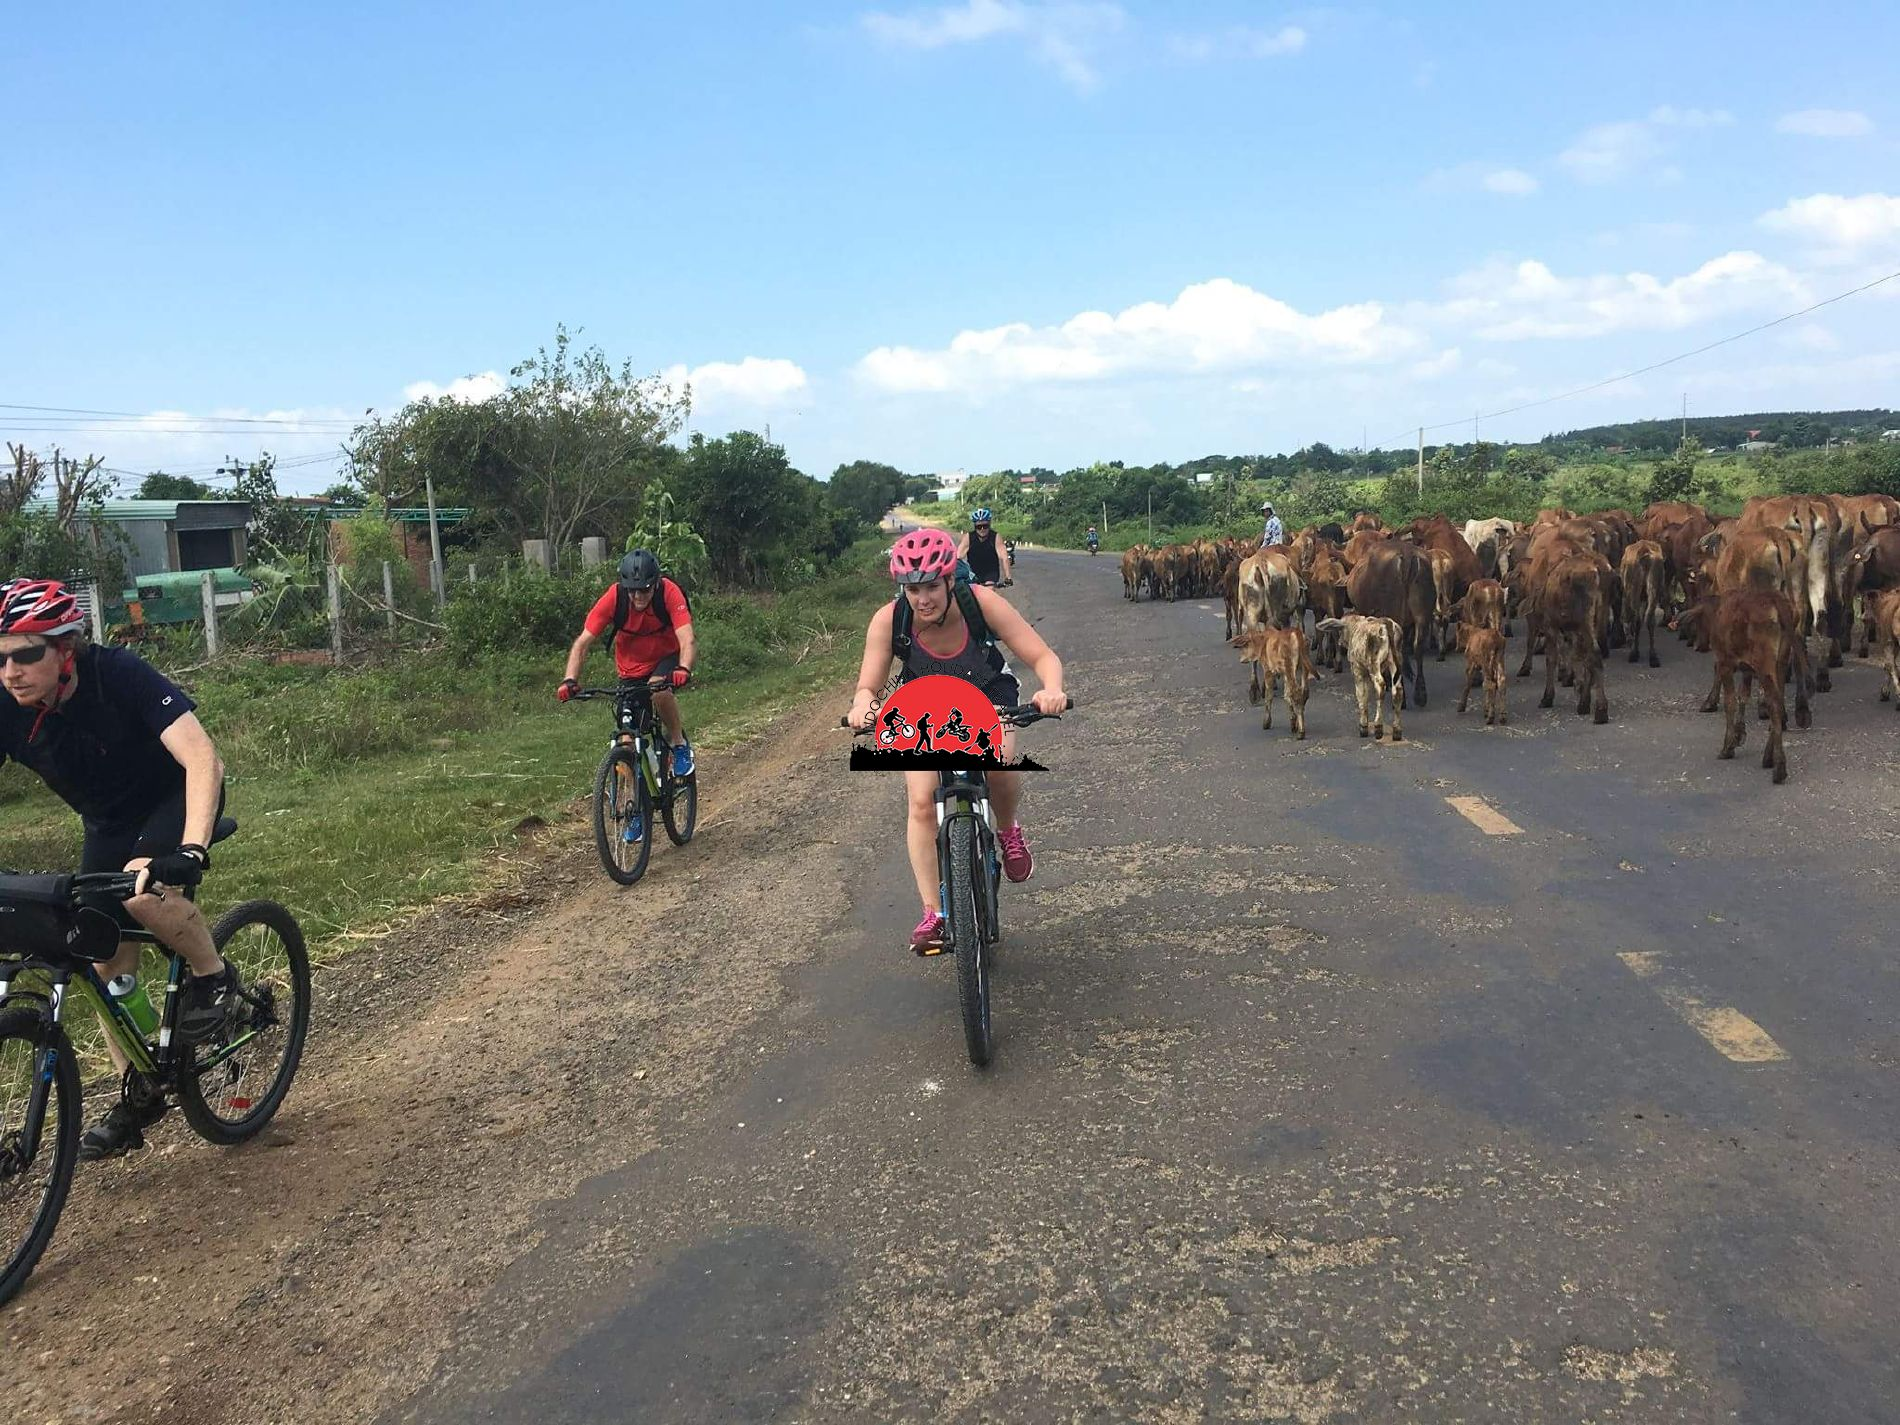 Kalaw Cycling To Inle Lake – 1 Day